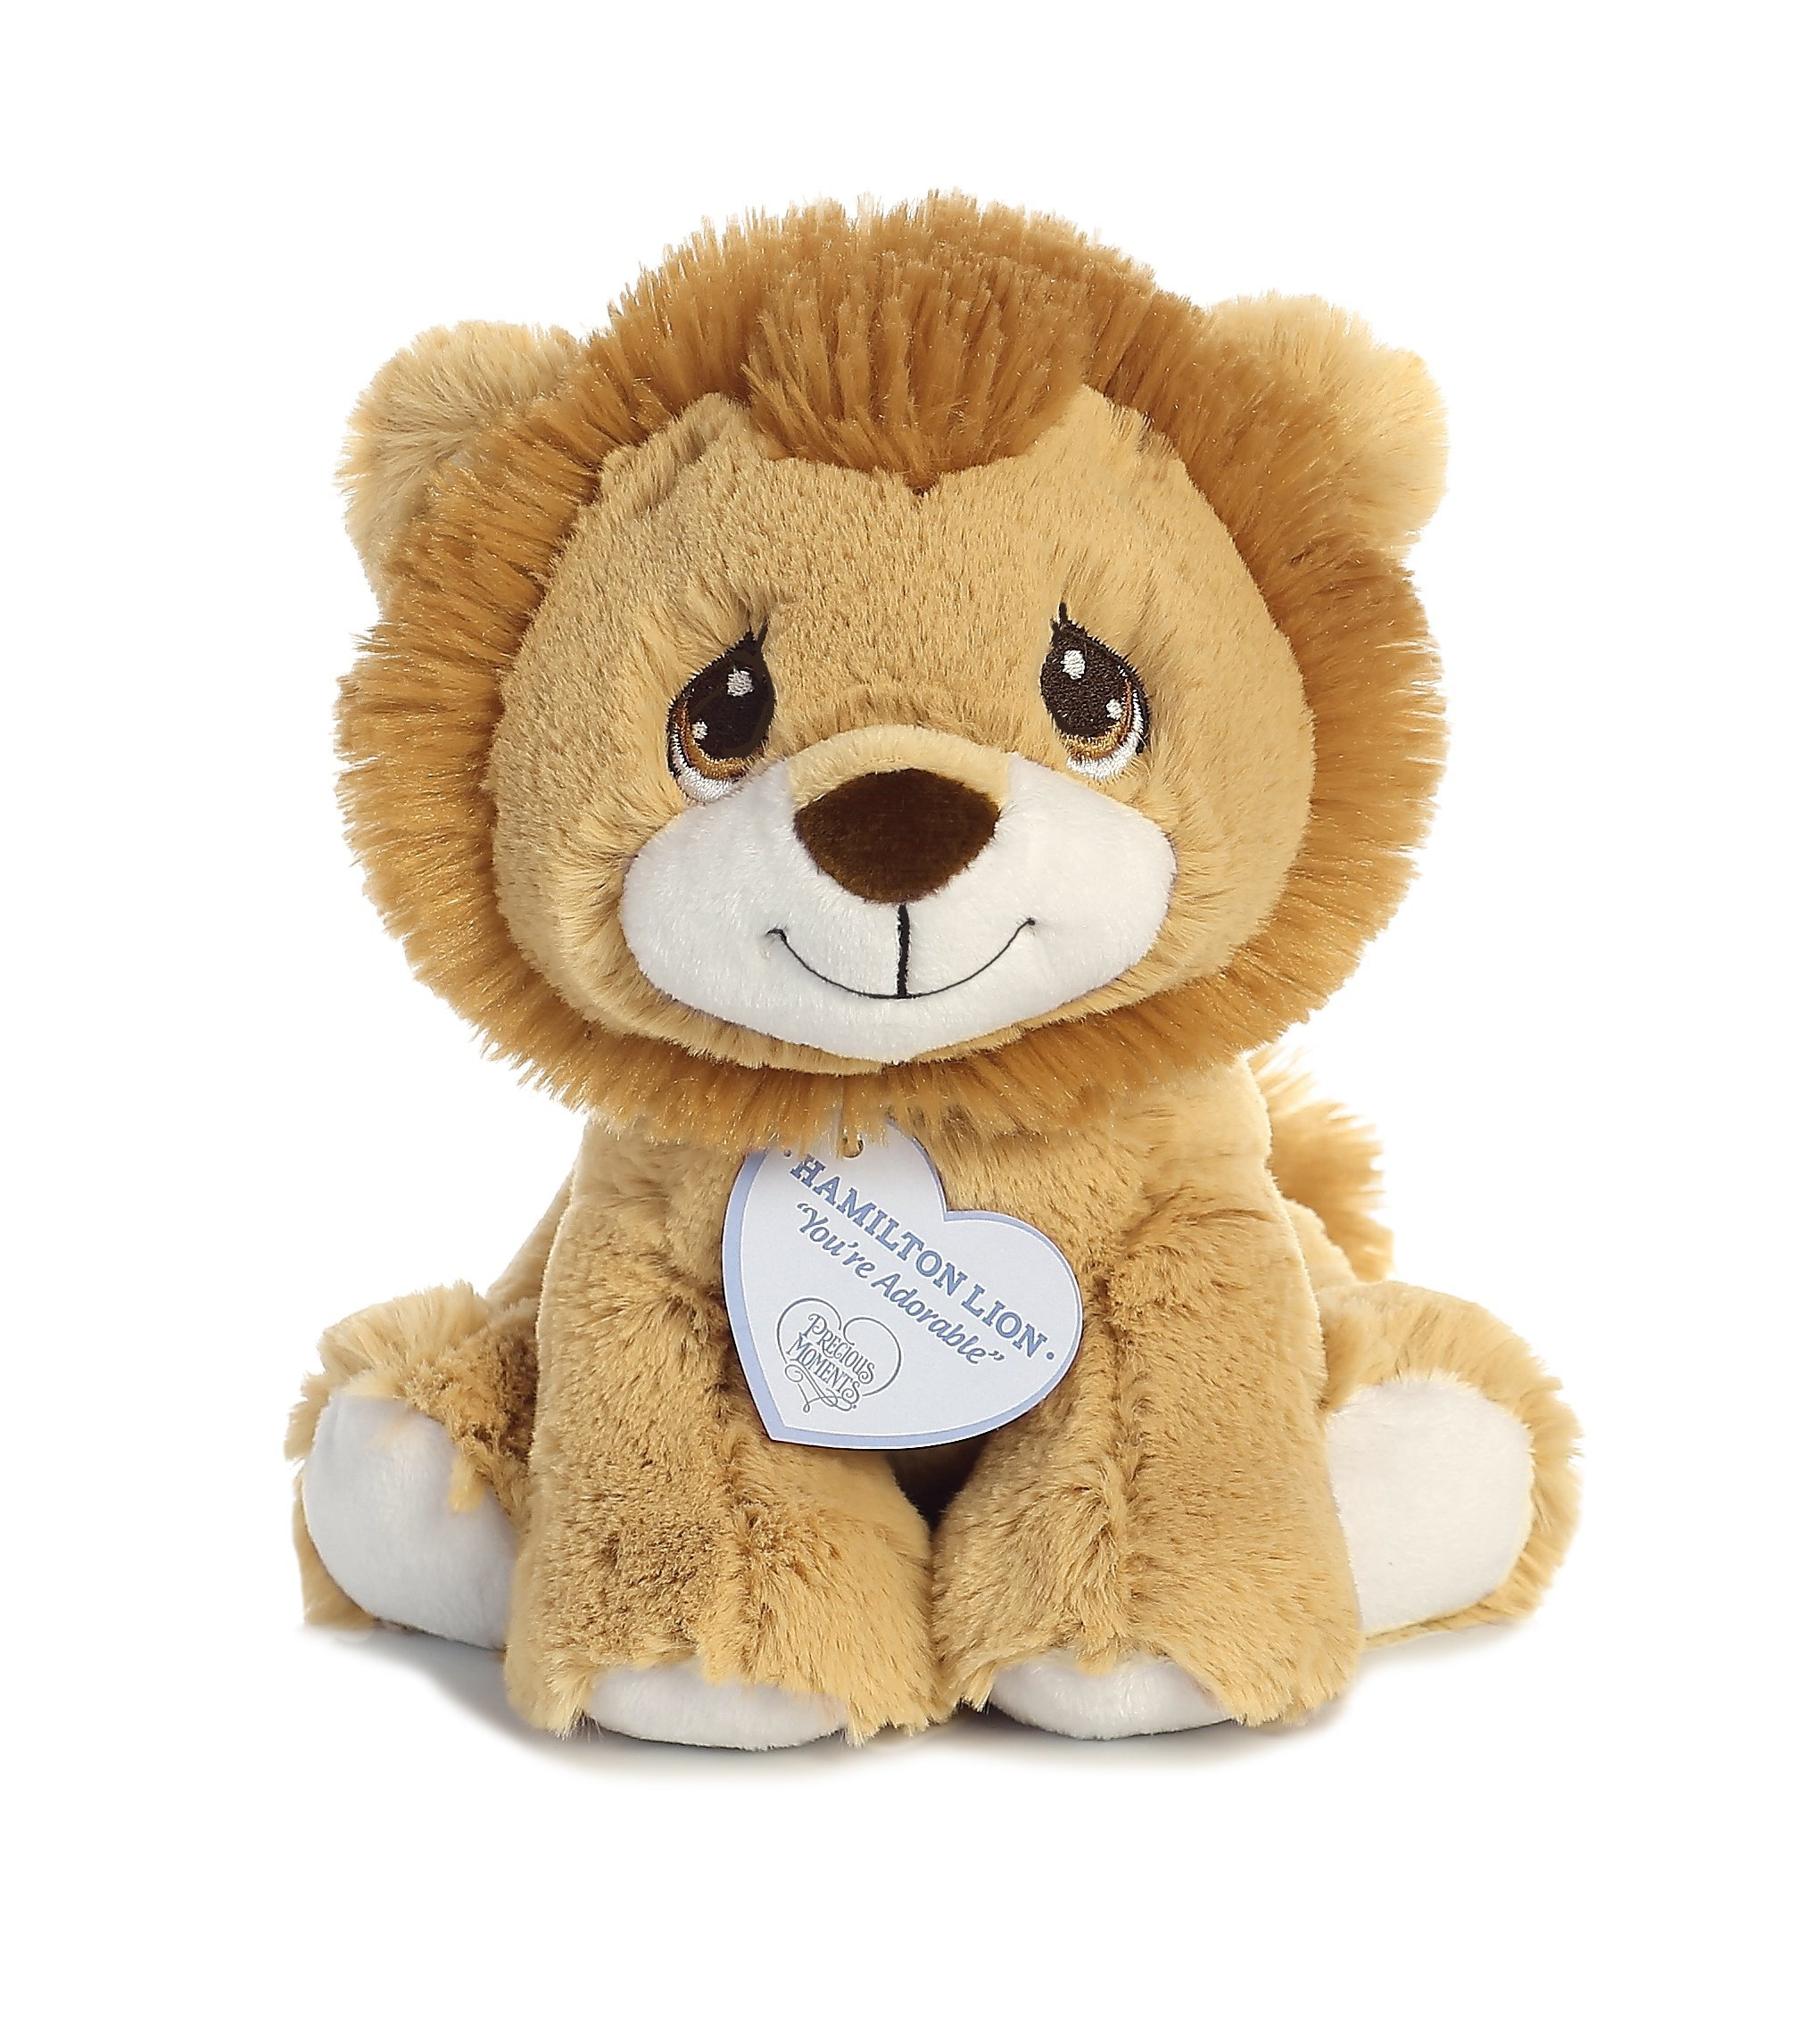 Hamilton Lion 8 inch - Baby Stuffed Animal by Precious Moments (15710) by AURORA